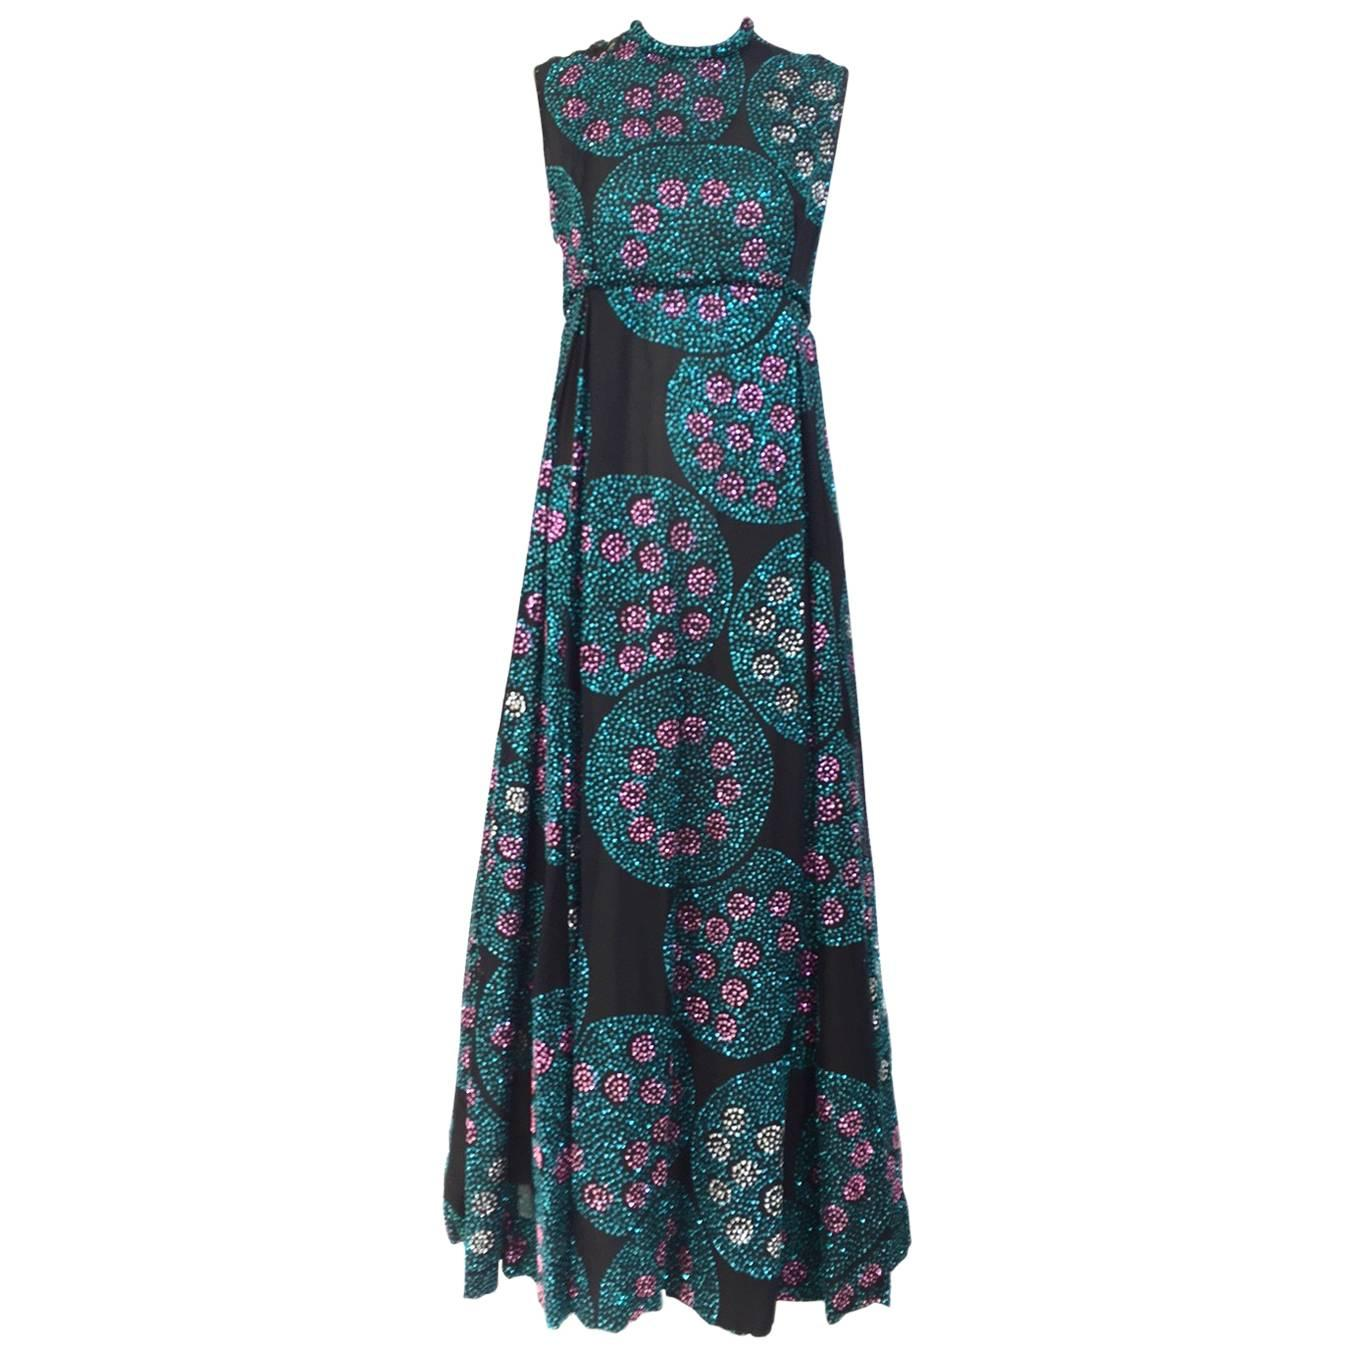 1970s CARDINALI Green and pink circle sequin gown